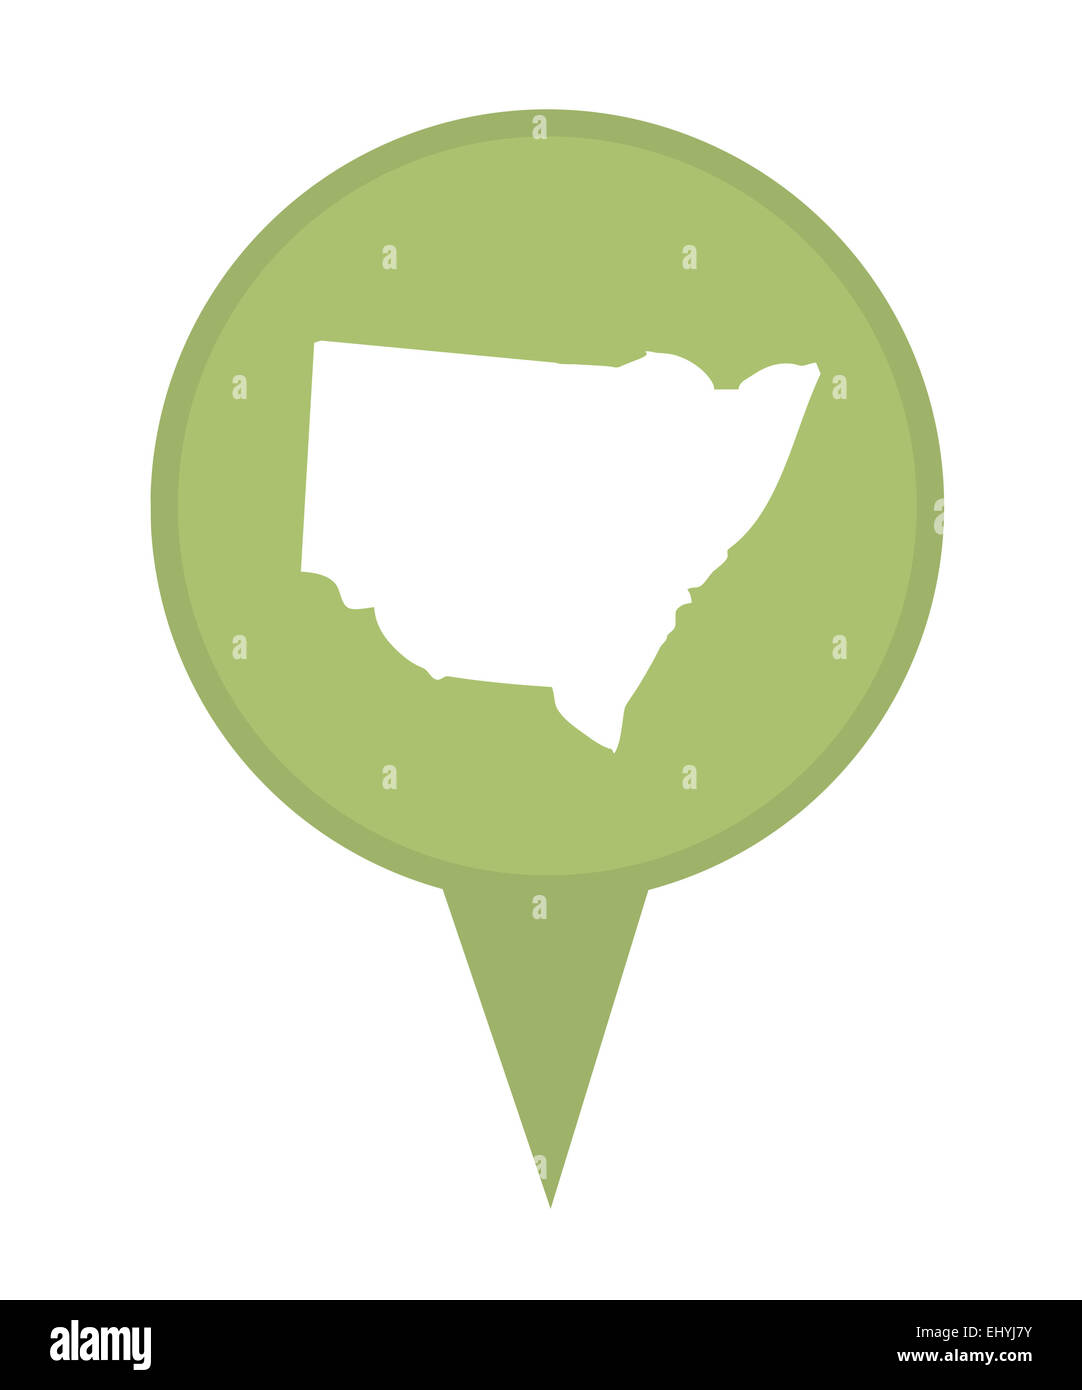 Australia New South Wales State map marker pin isolated on a white background. - Stock Image